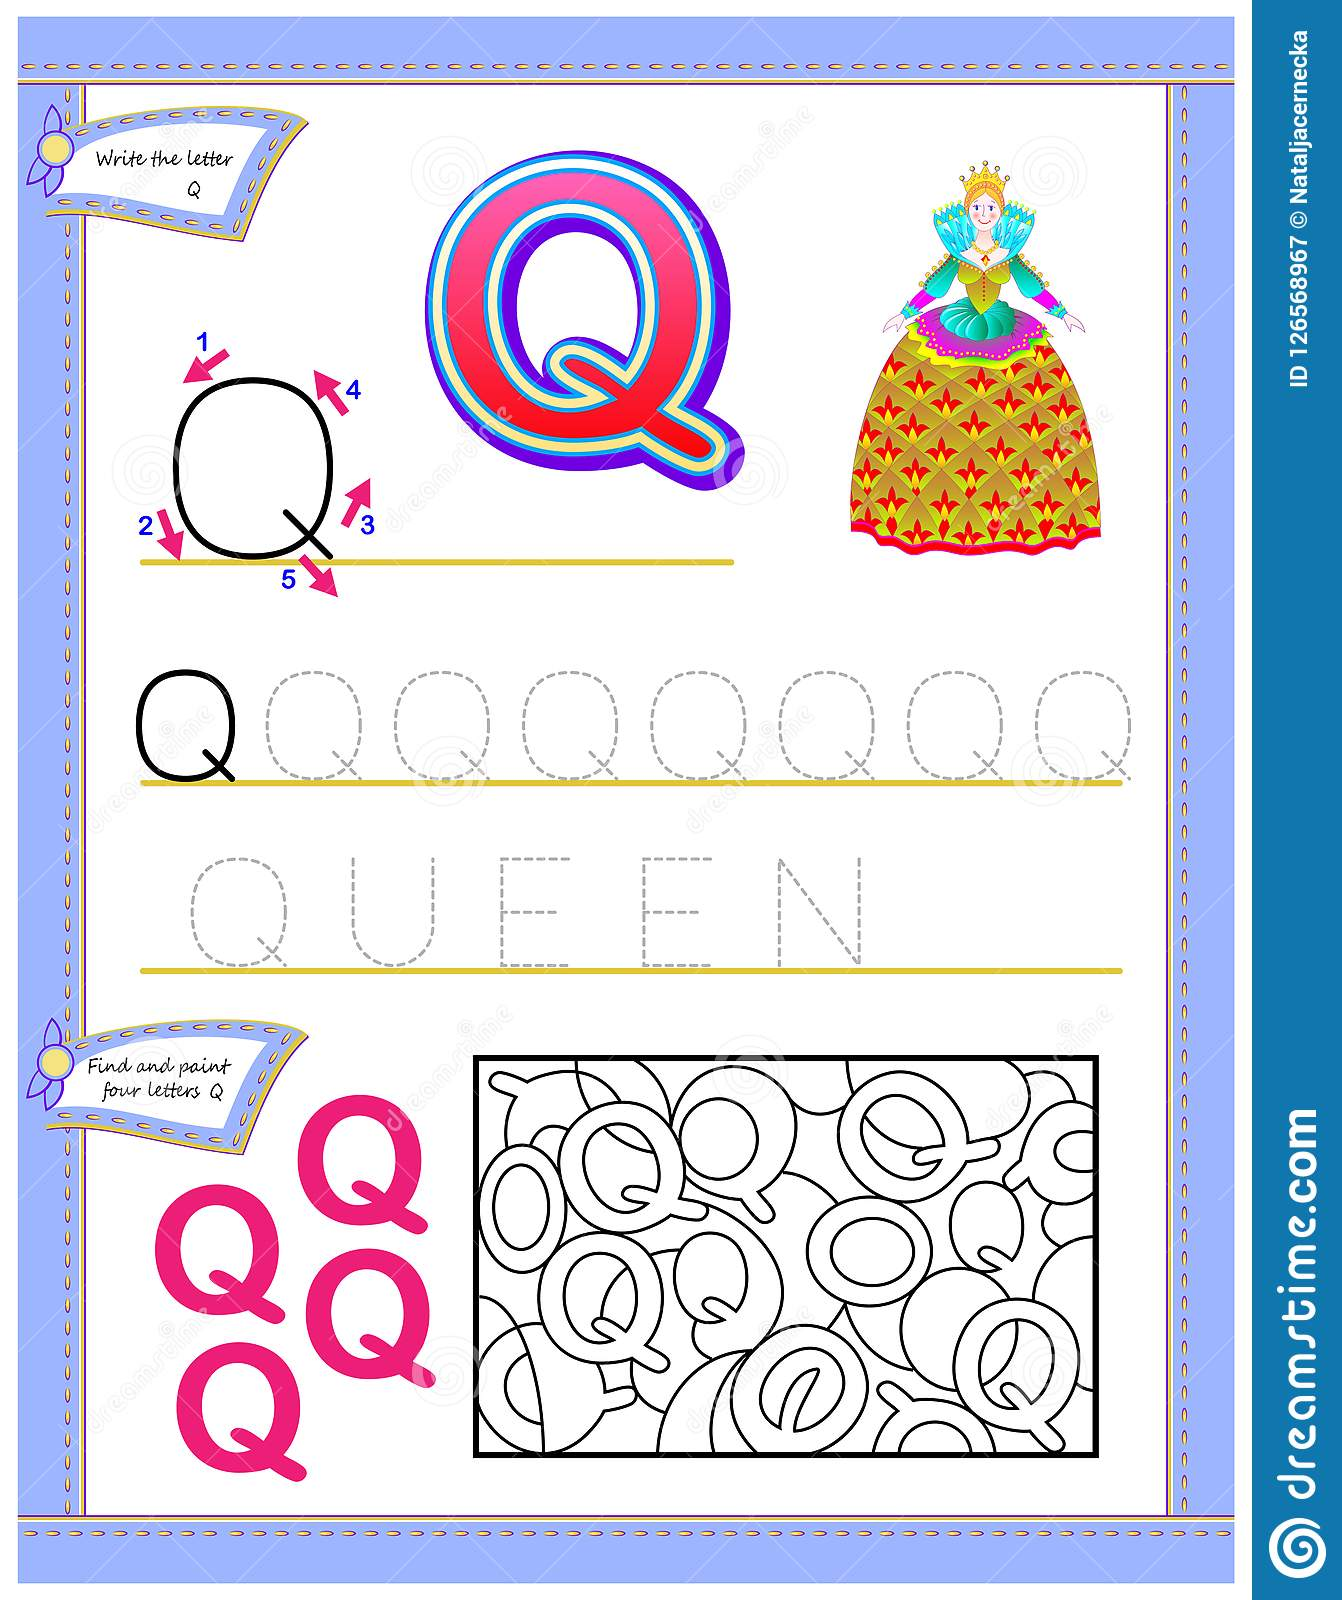 Worksheet For Kids With Letter Q For Study English